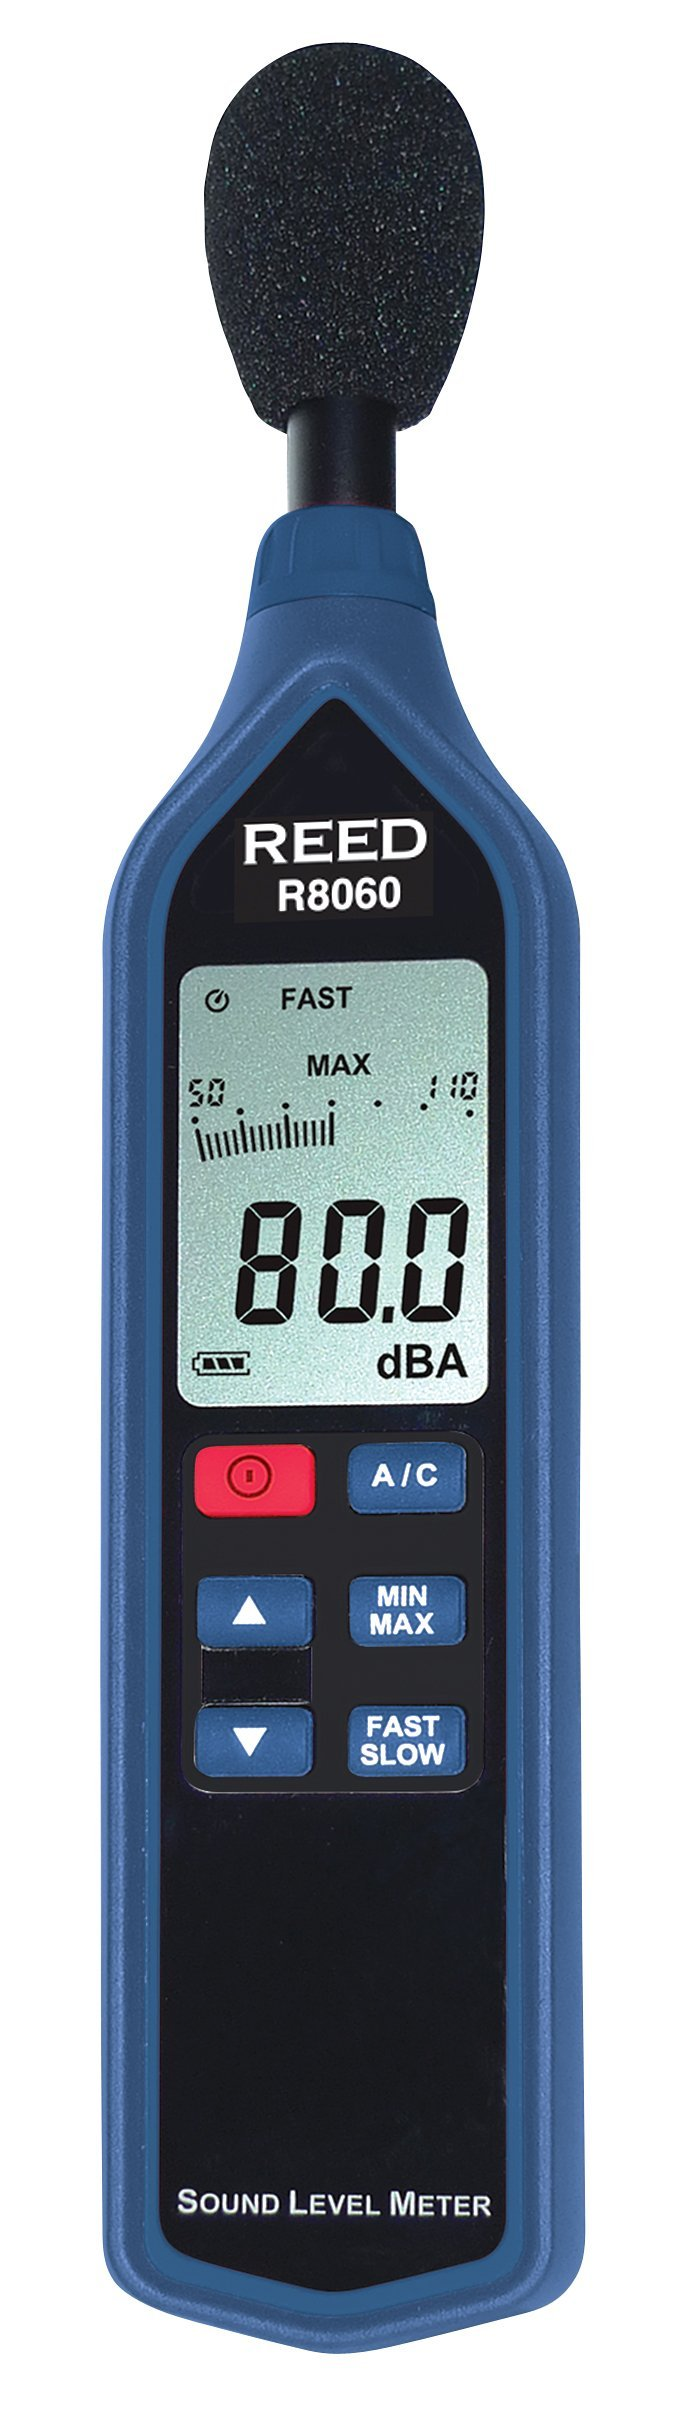 REED Instruments R8060 Sound Level Meter with Bargraph, Type 2, 30 to 130 dB by REED Instruments